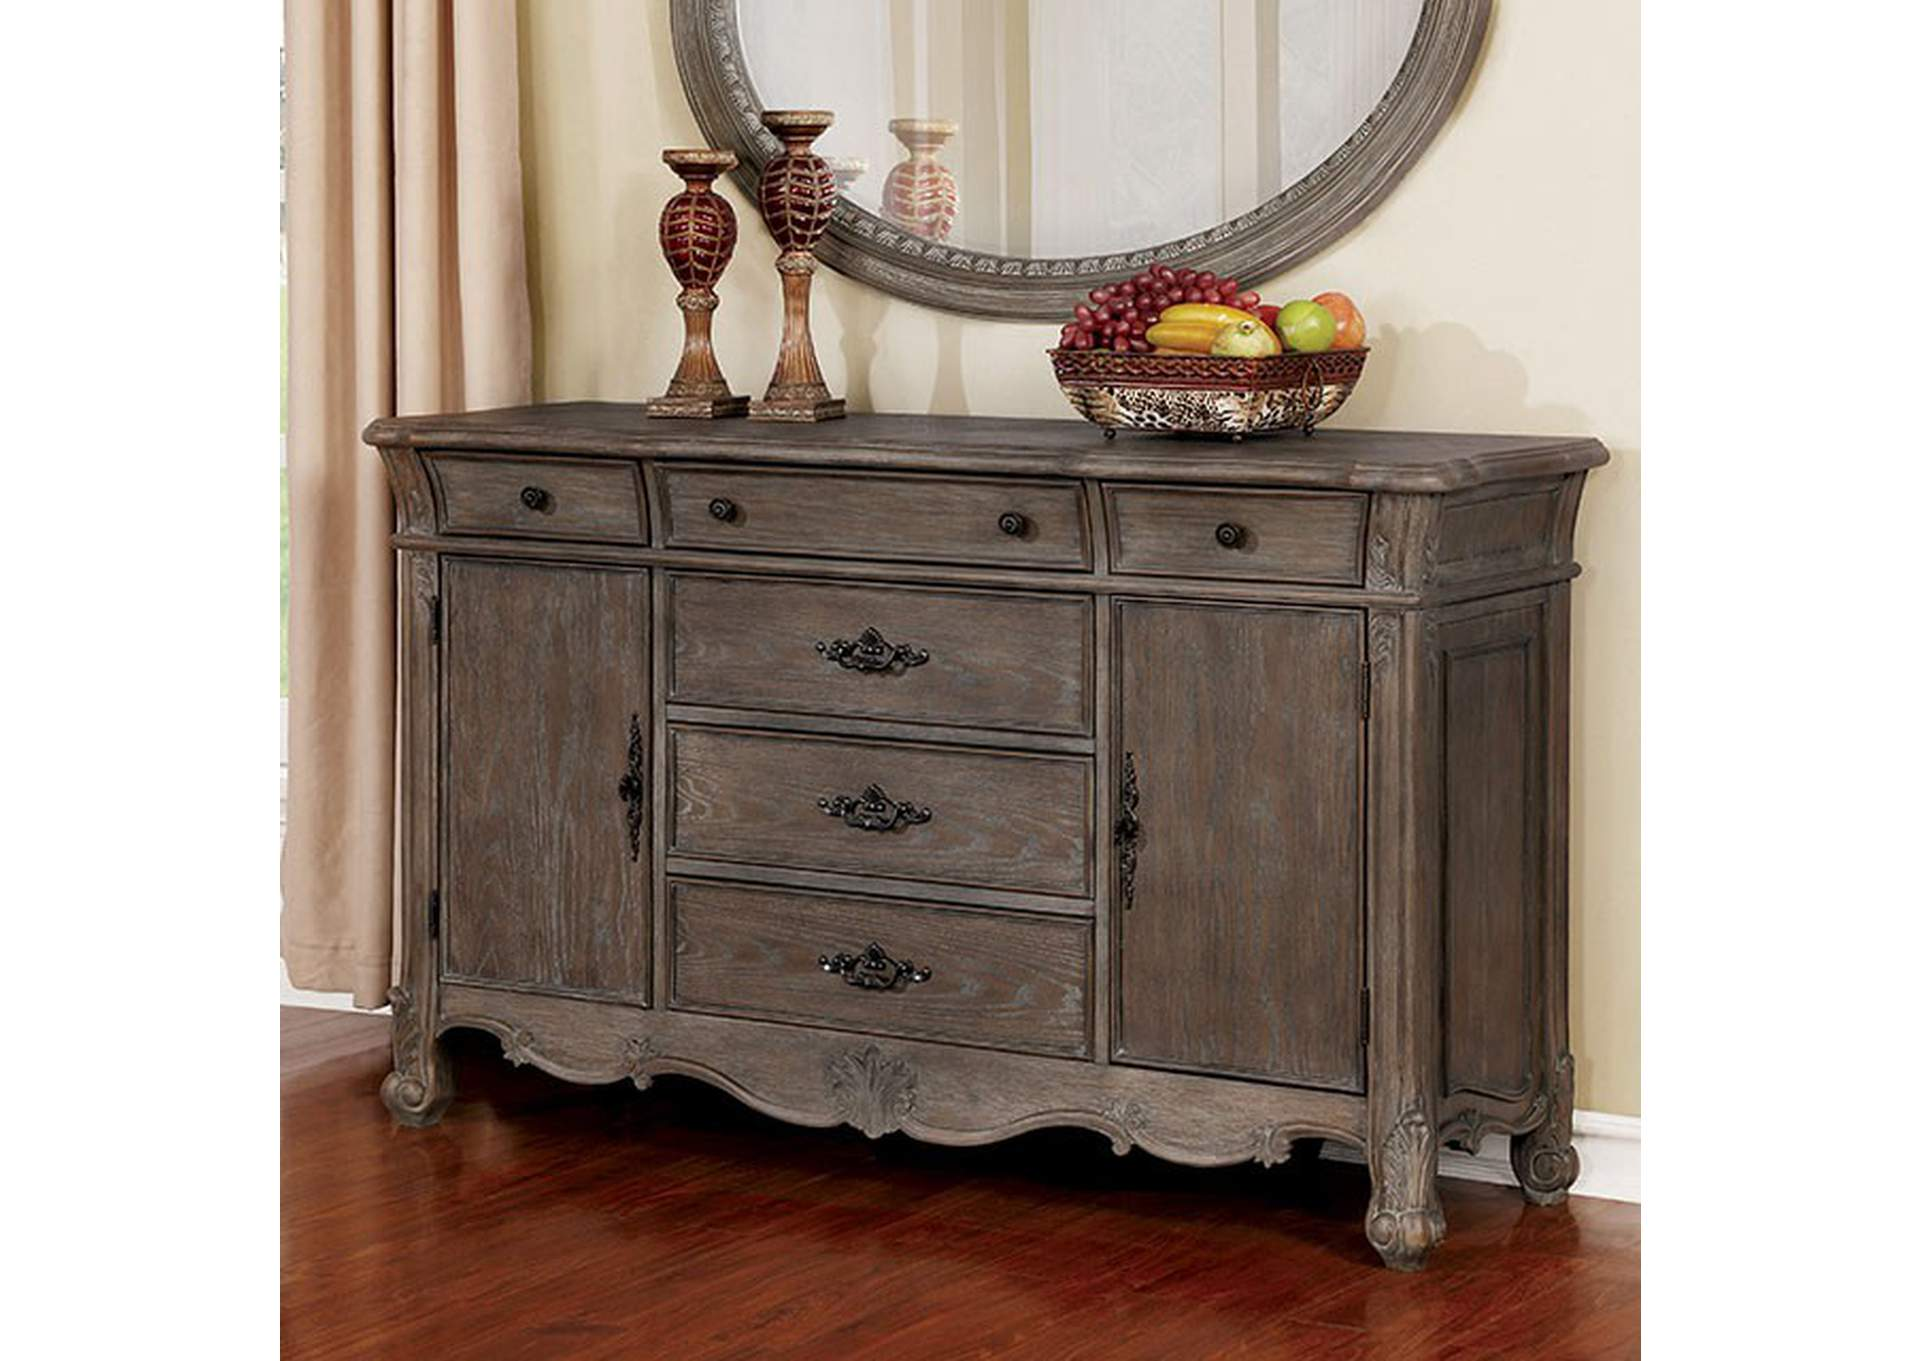 Charmaine Antique Brushed Gray Server,Furniture of America